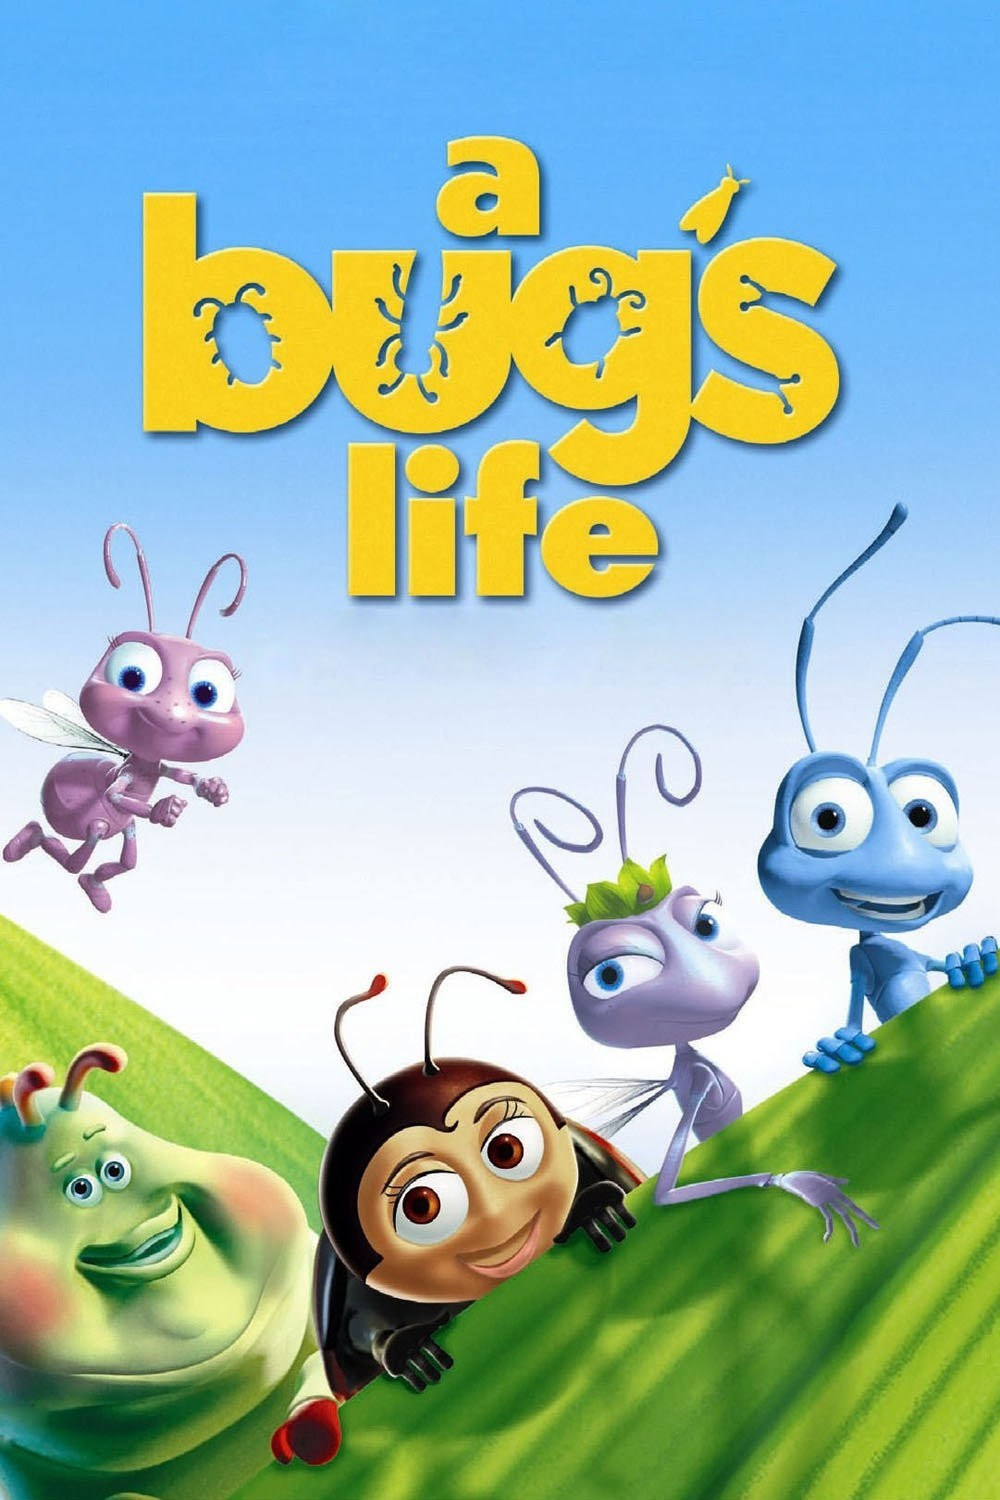 It is an image of Old Fashioned Characters in a Bug's Life